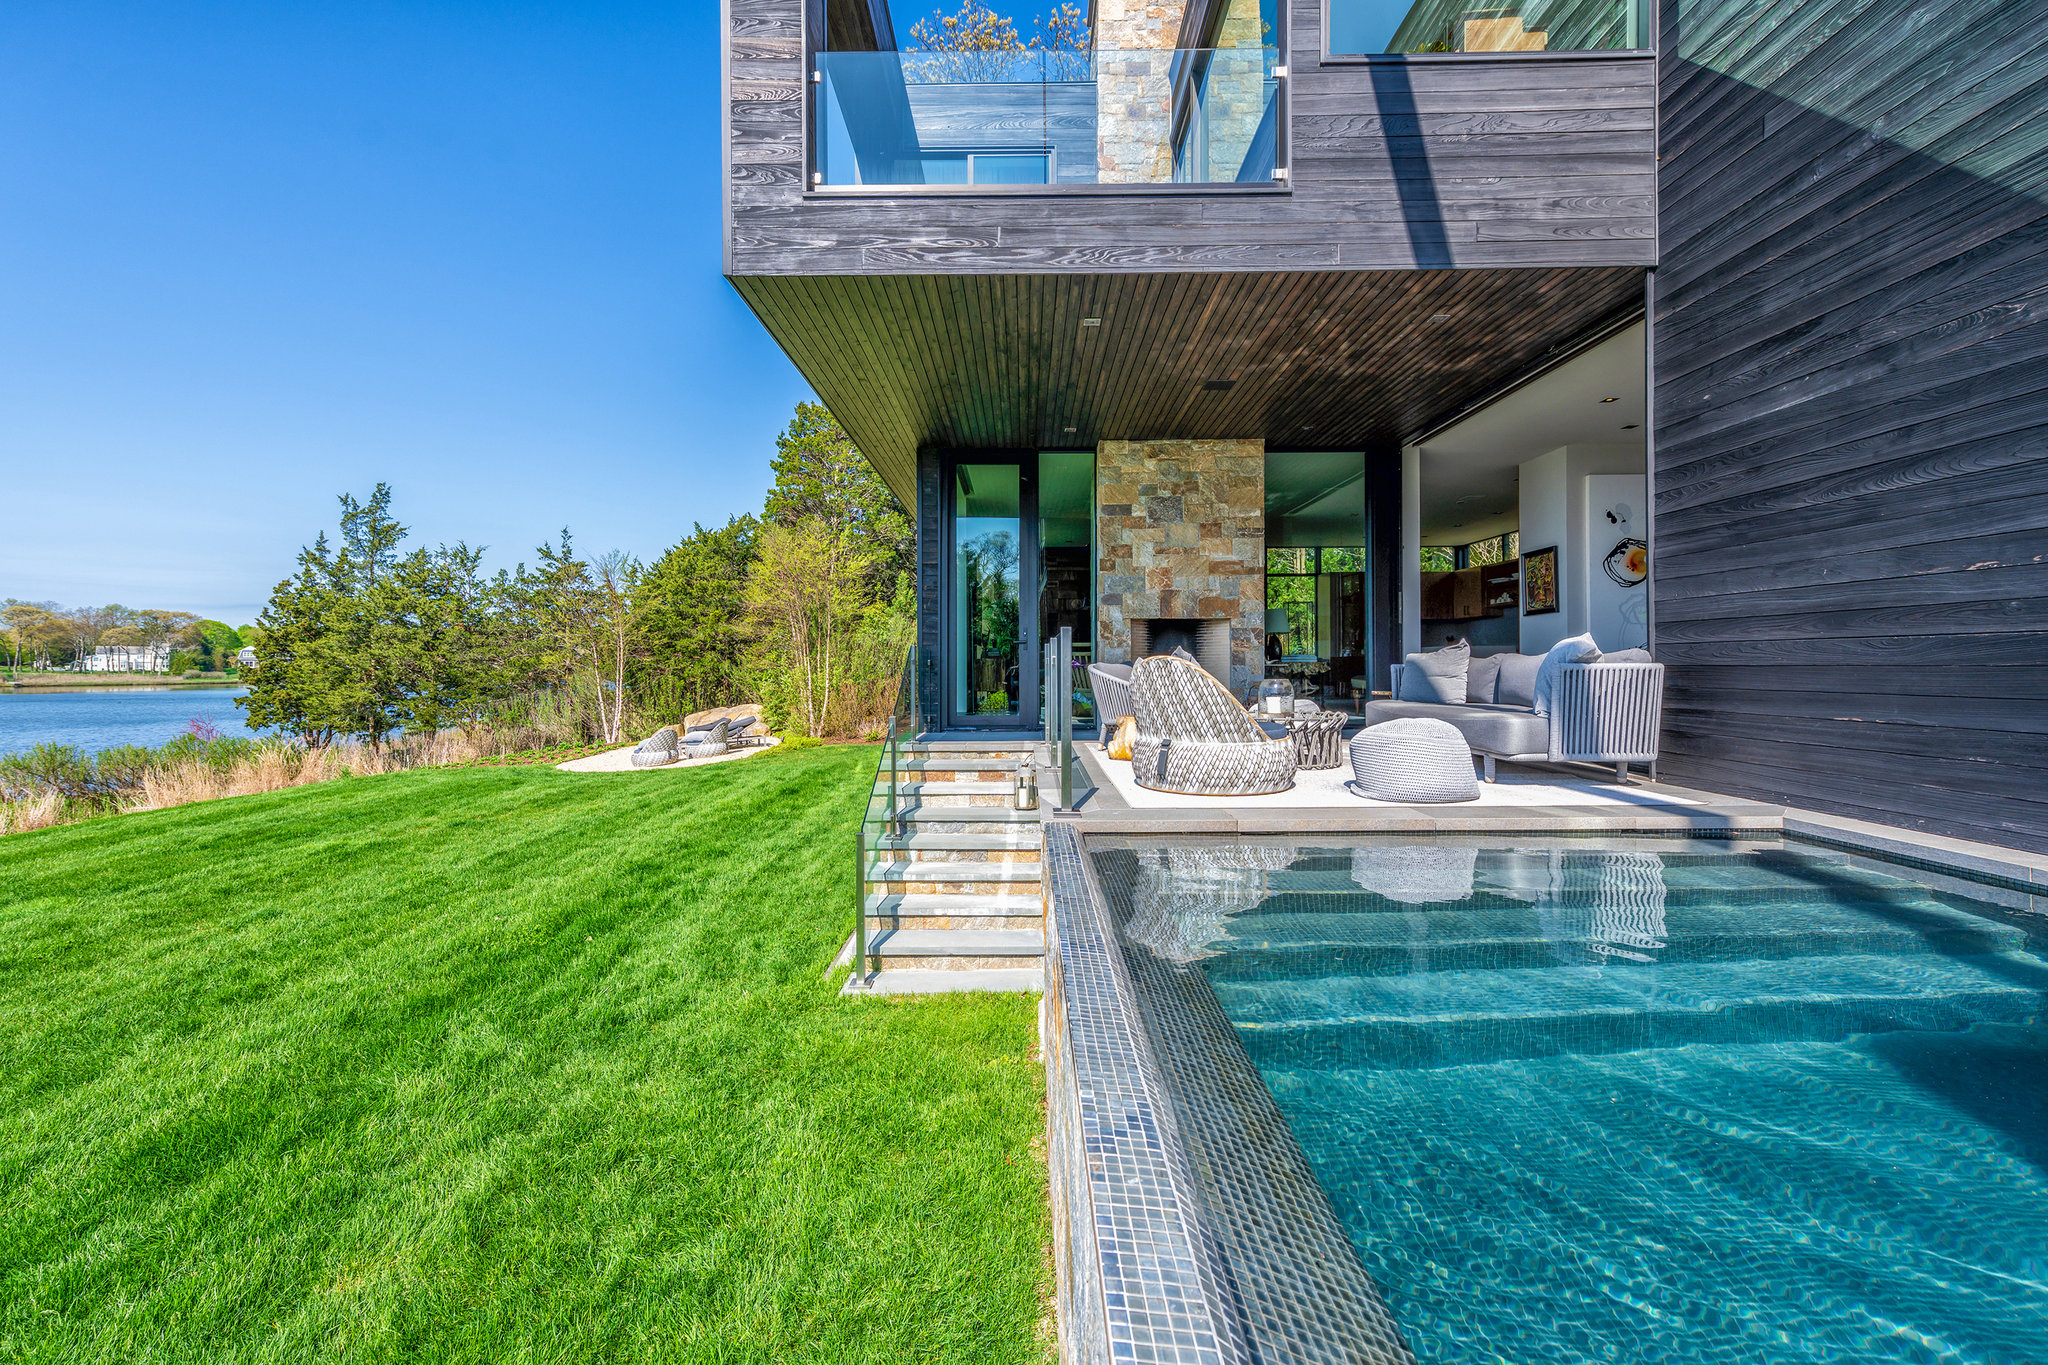 Modern Beach Houses in the Hamptons  The New York Times